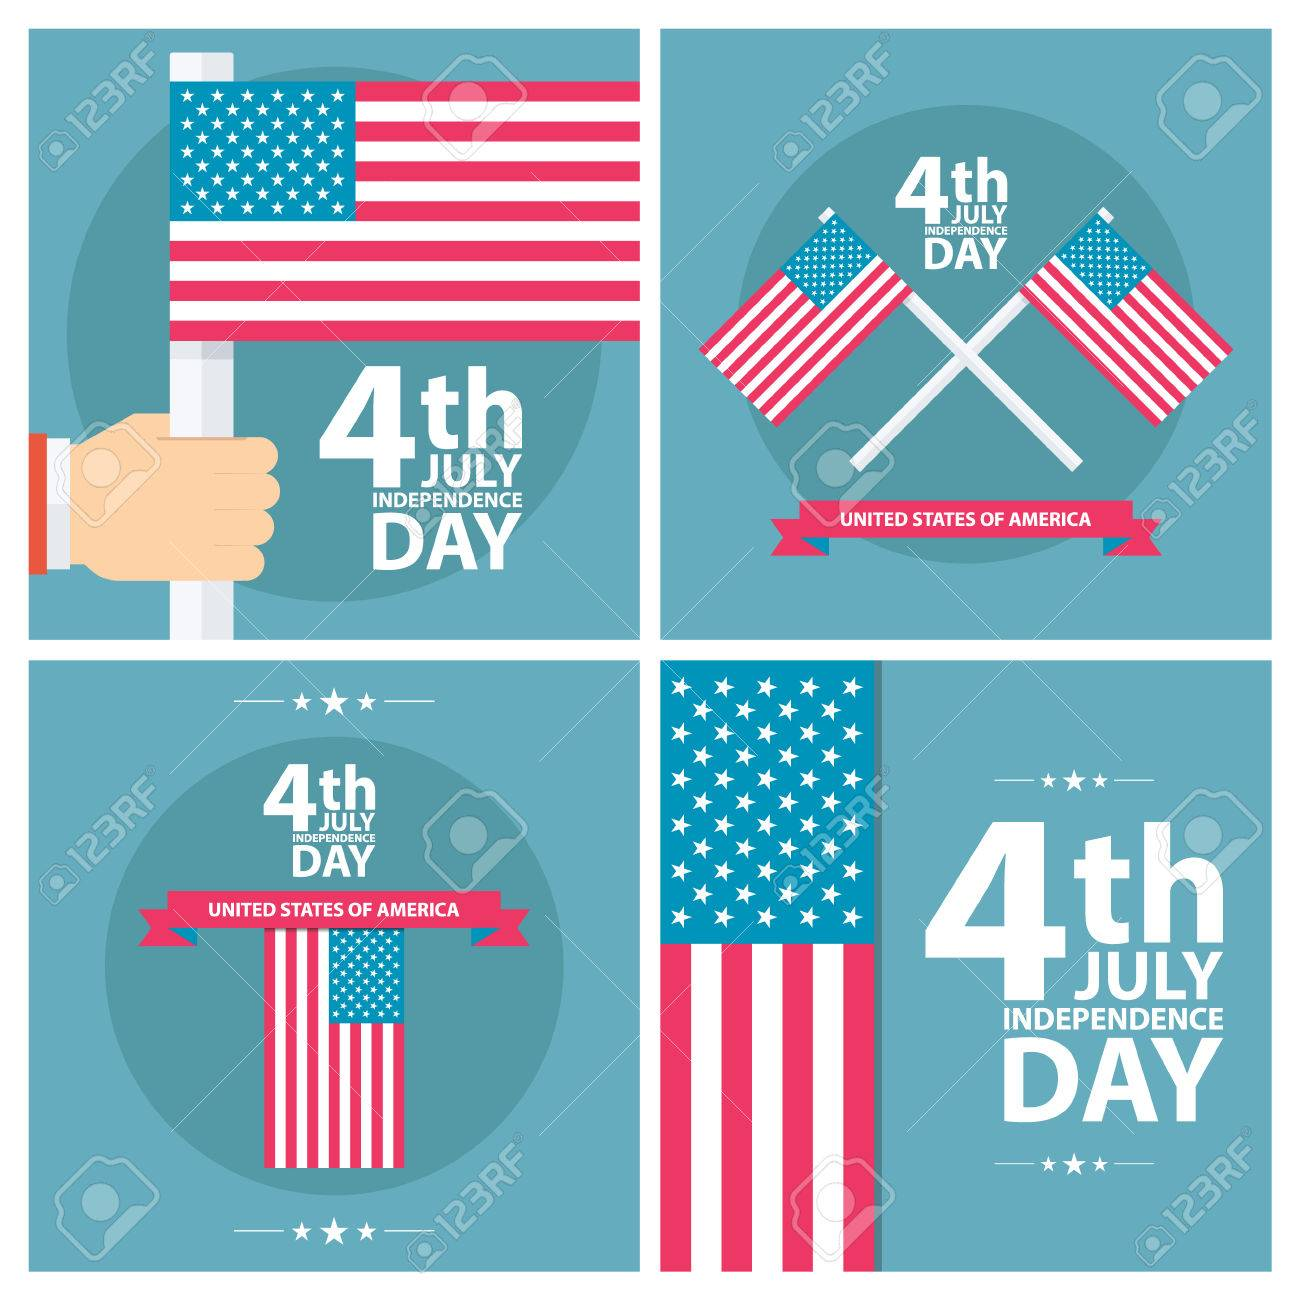 a1b8c74dbc1 Set of 4th of july American independence day greeting cards with american  flag. Flat design